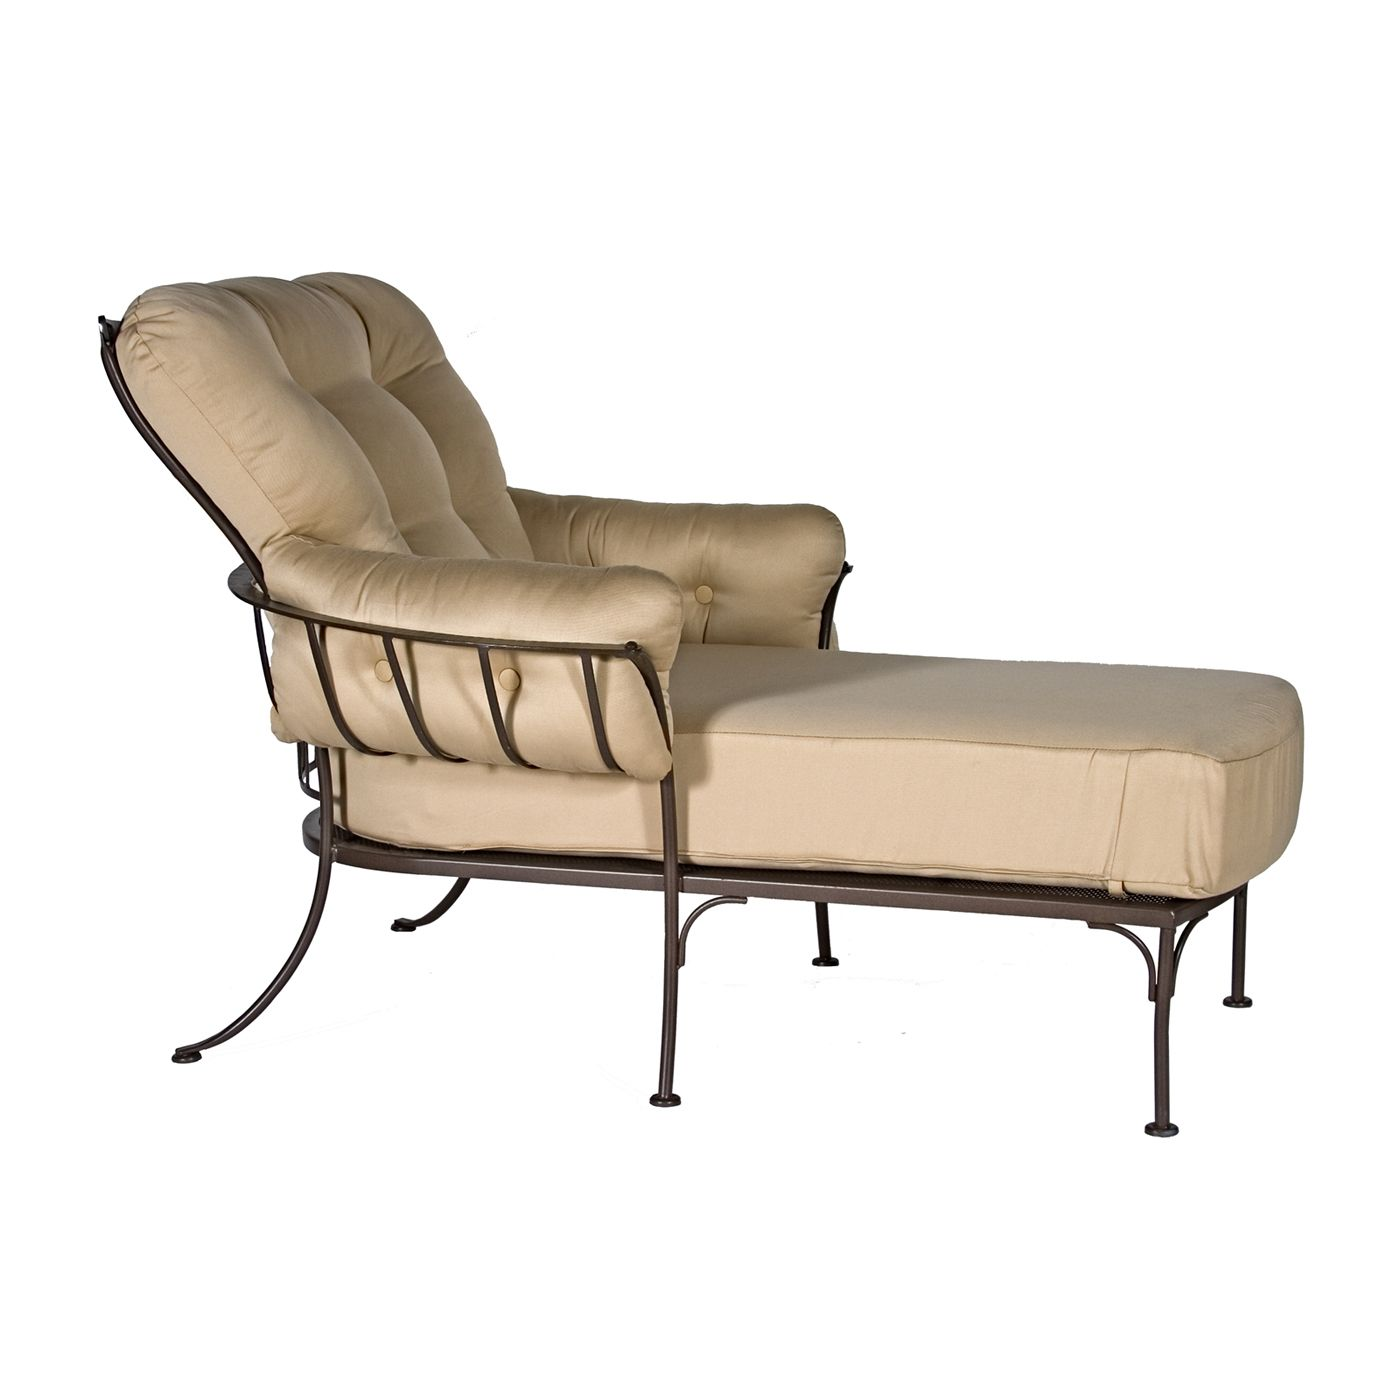 OW Lee 429 CH SP Monterra Outdoor Chaise Lounge     $2069